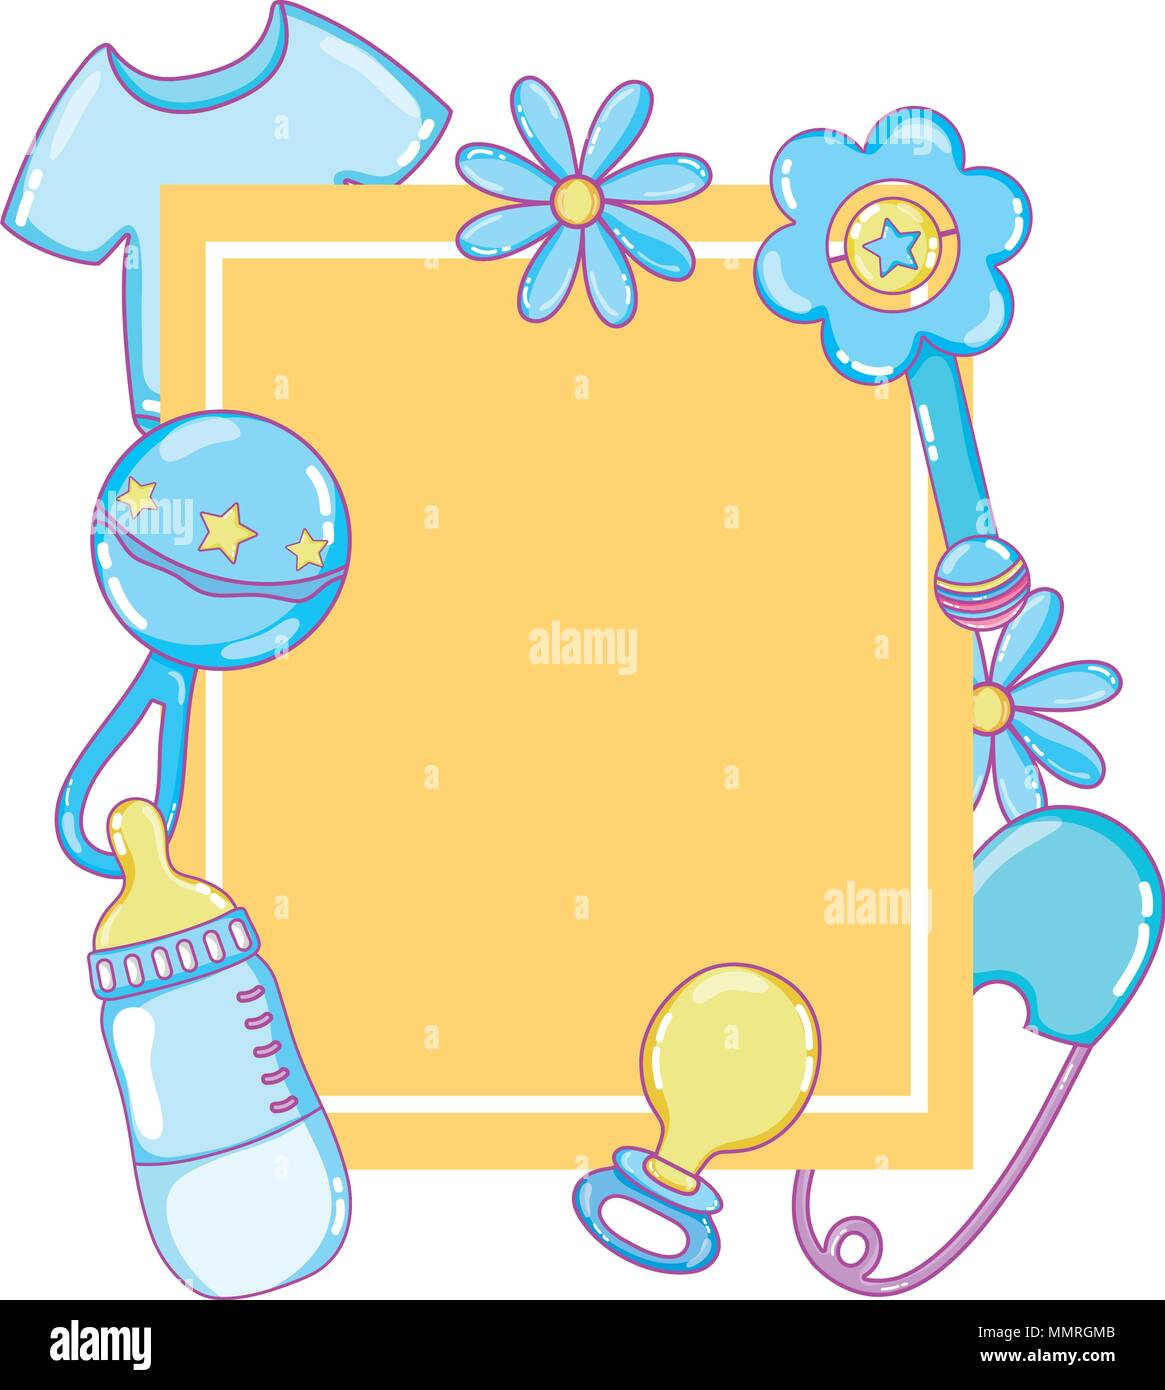 emblem style with baby things products - Stock Image